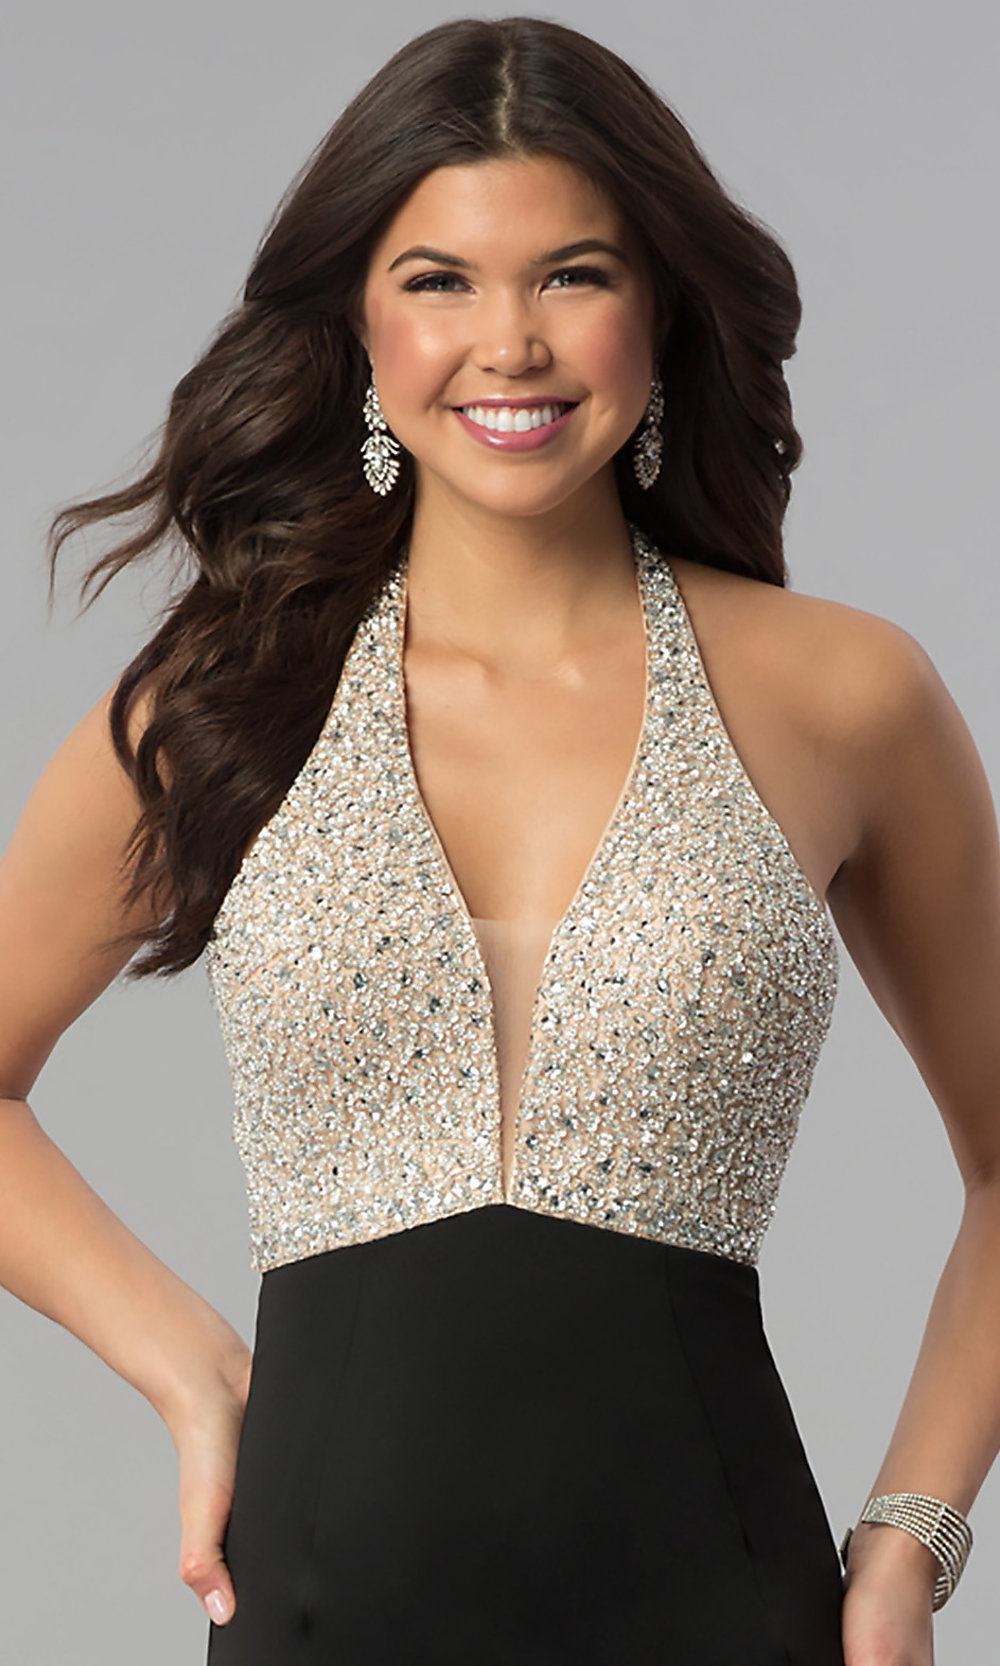 b00bedf8de468 Image of beaded-bodice long halter formal dress with v-neck. Style: Tap to  expand